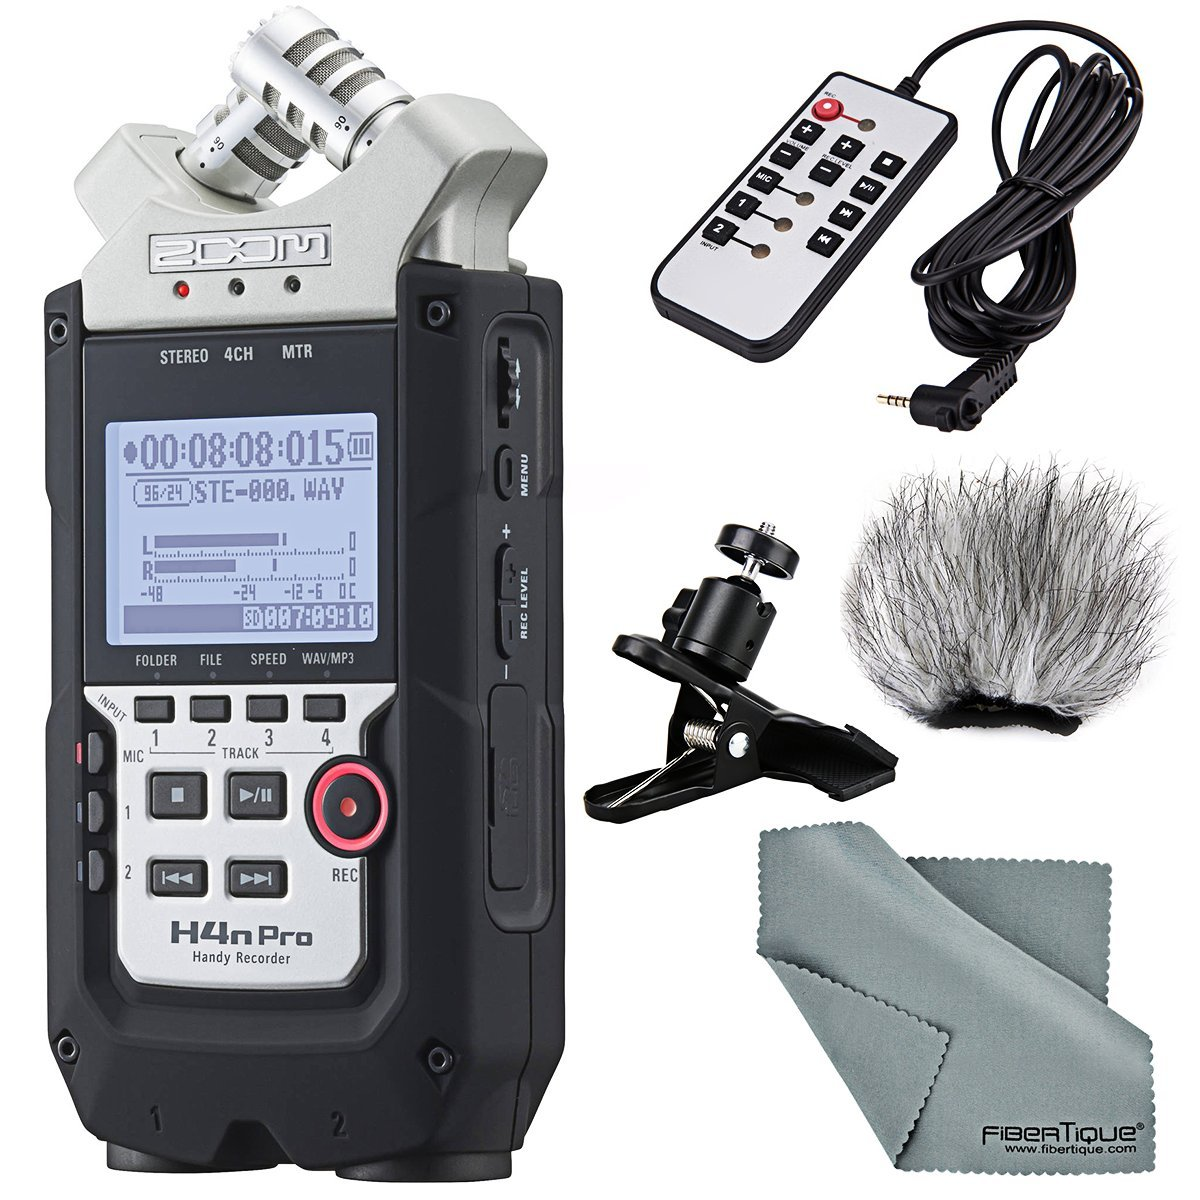 ZOOM H4N PRO Handy 4-Channel Recorder Bundle with Remote + Windscreen + Multi-function Clip Clamp + FiberTique Cleaning Cloth Photo Savings PS-ZH4NP_R